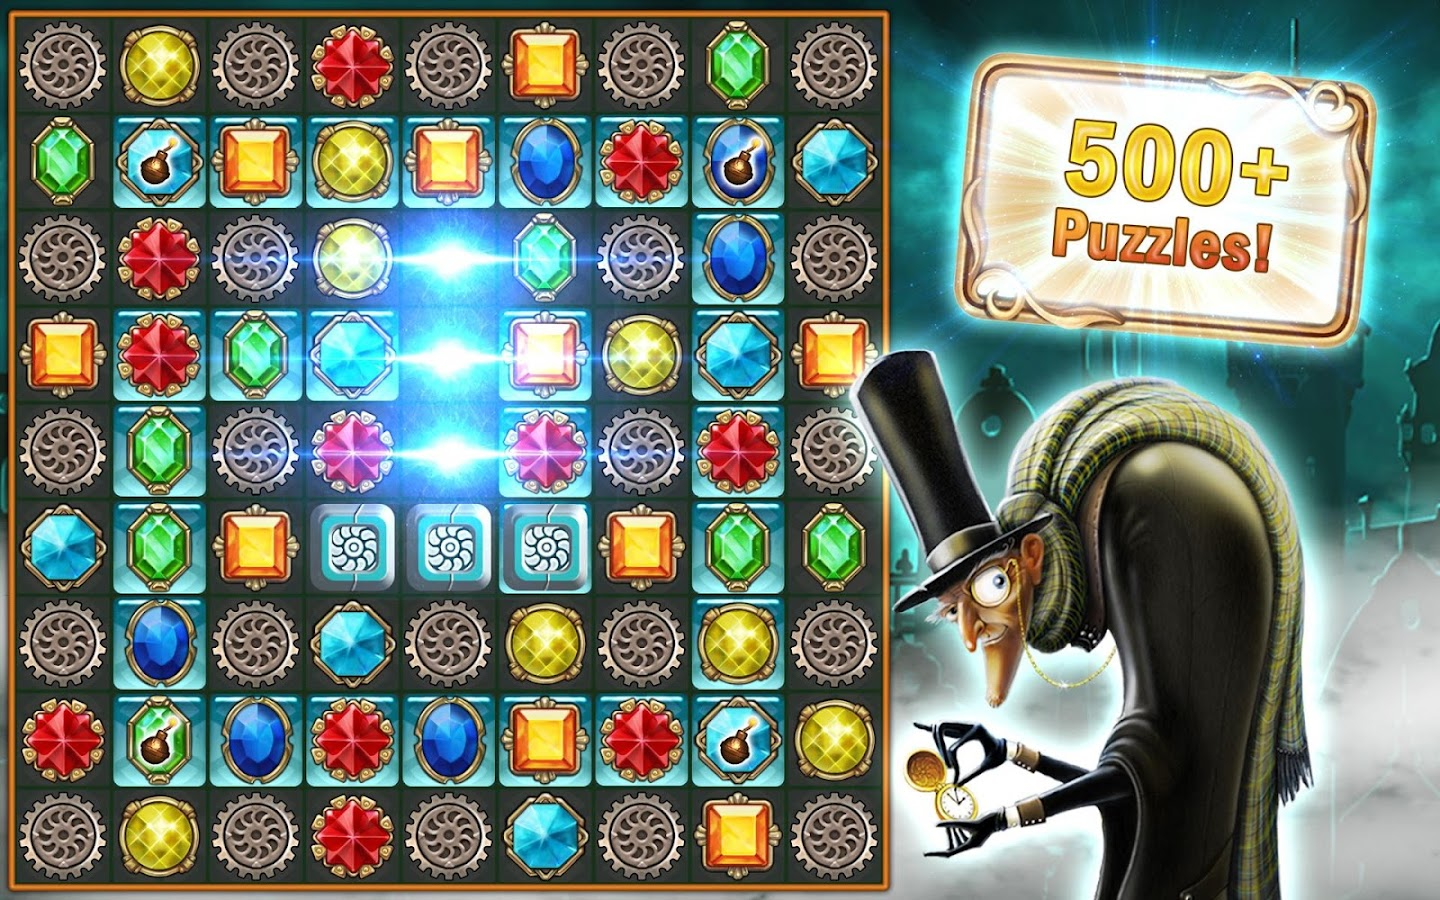 Clockmaker amazing match 3 android apps on google play Best online c ide